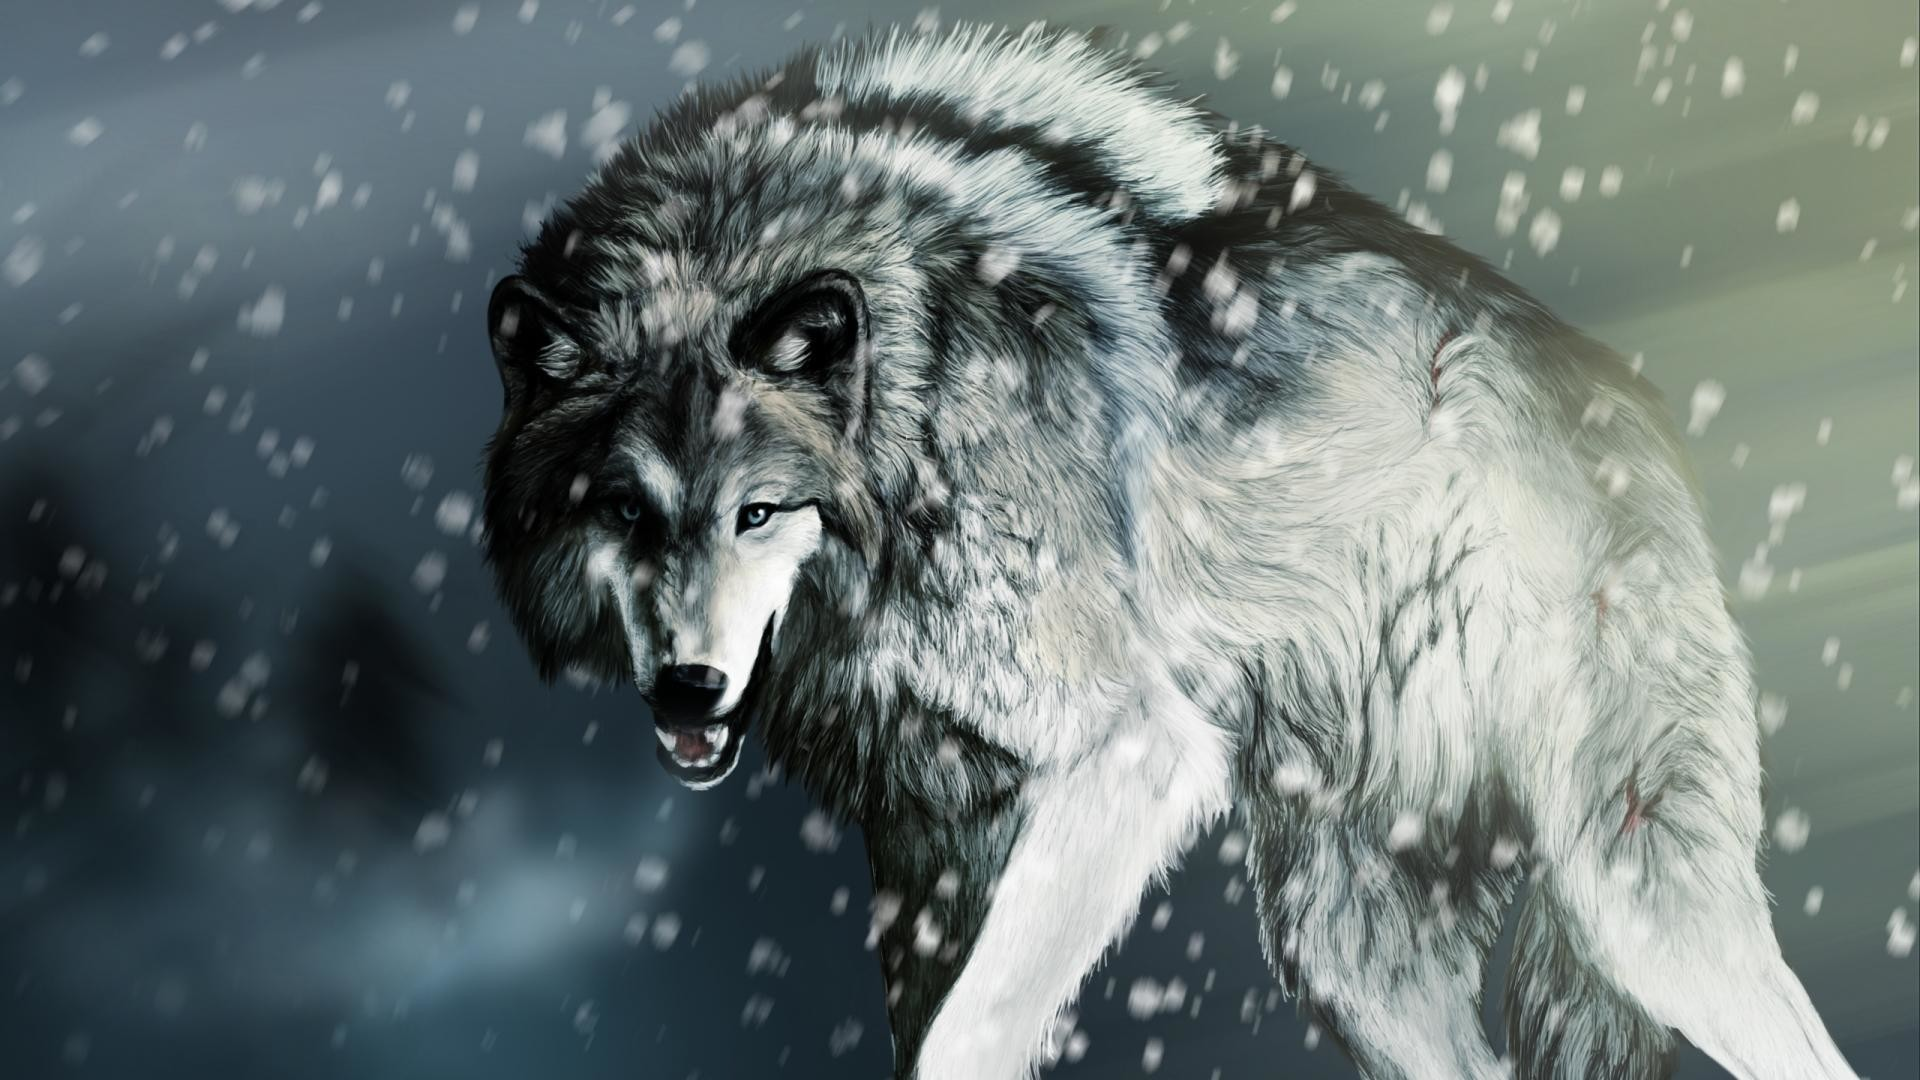 Baby wolf wallpaper 1920x1080 wolves wallpaper free hd wallpapers pinterest wolf wallpaper and wallpaper voltagebd Gallery